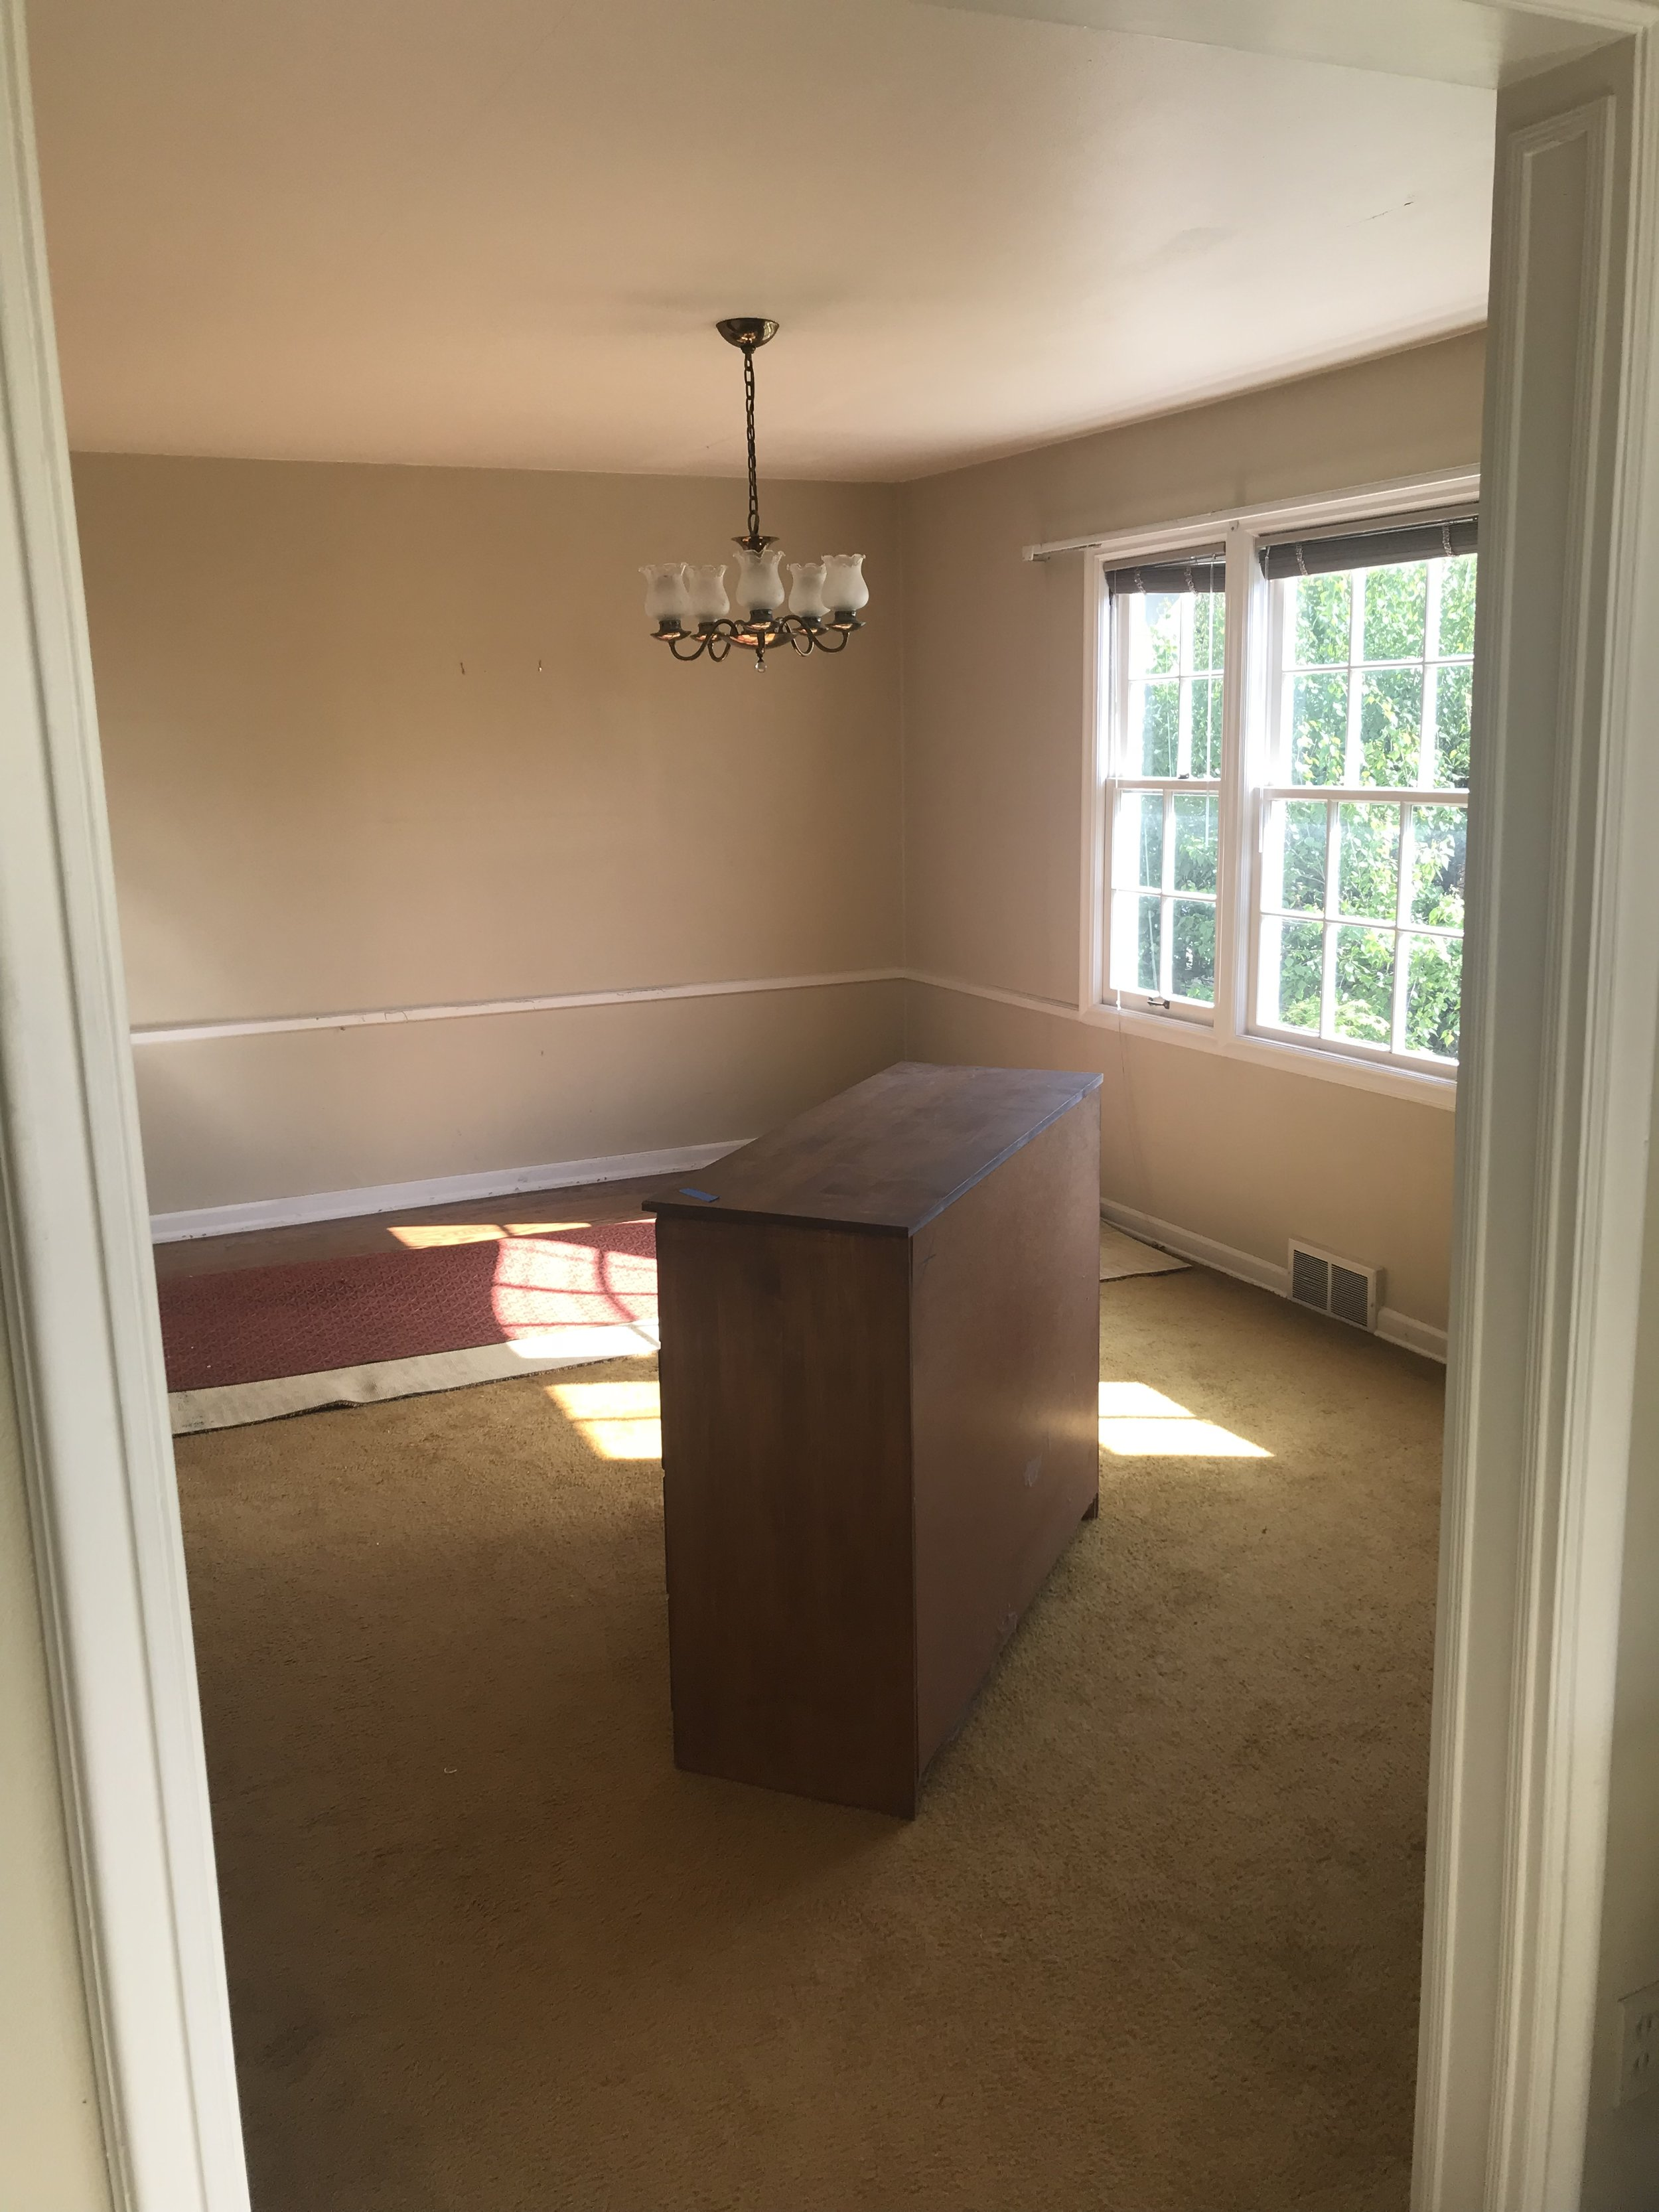 Copy of The dining room was a good size so we took advantage and added some great features for an outdoor entrance.